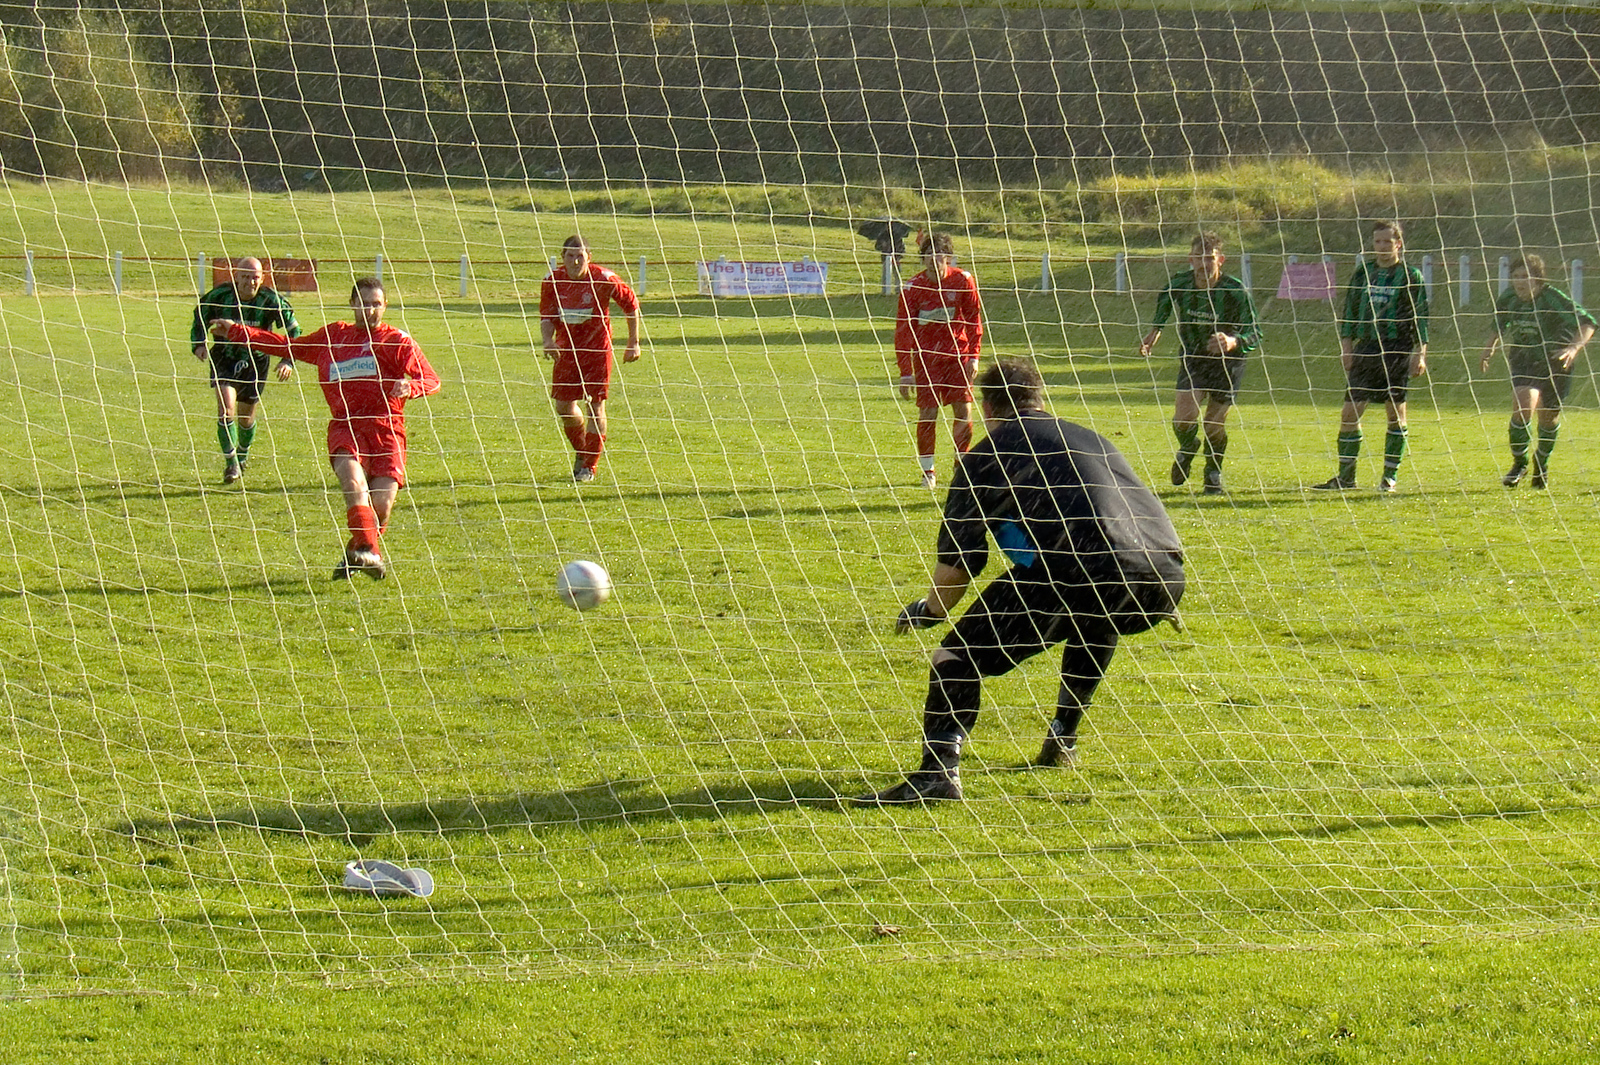 Colin Smith opens the scoring